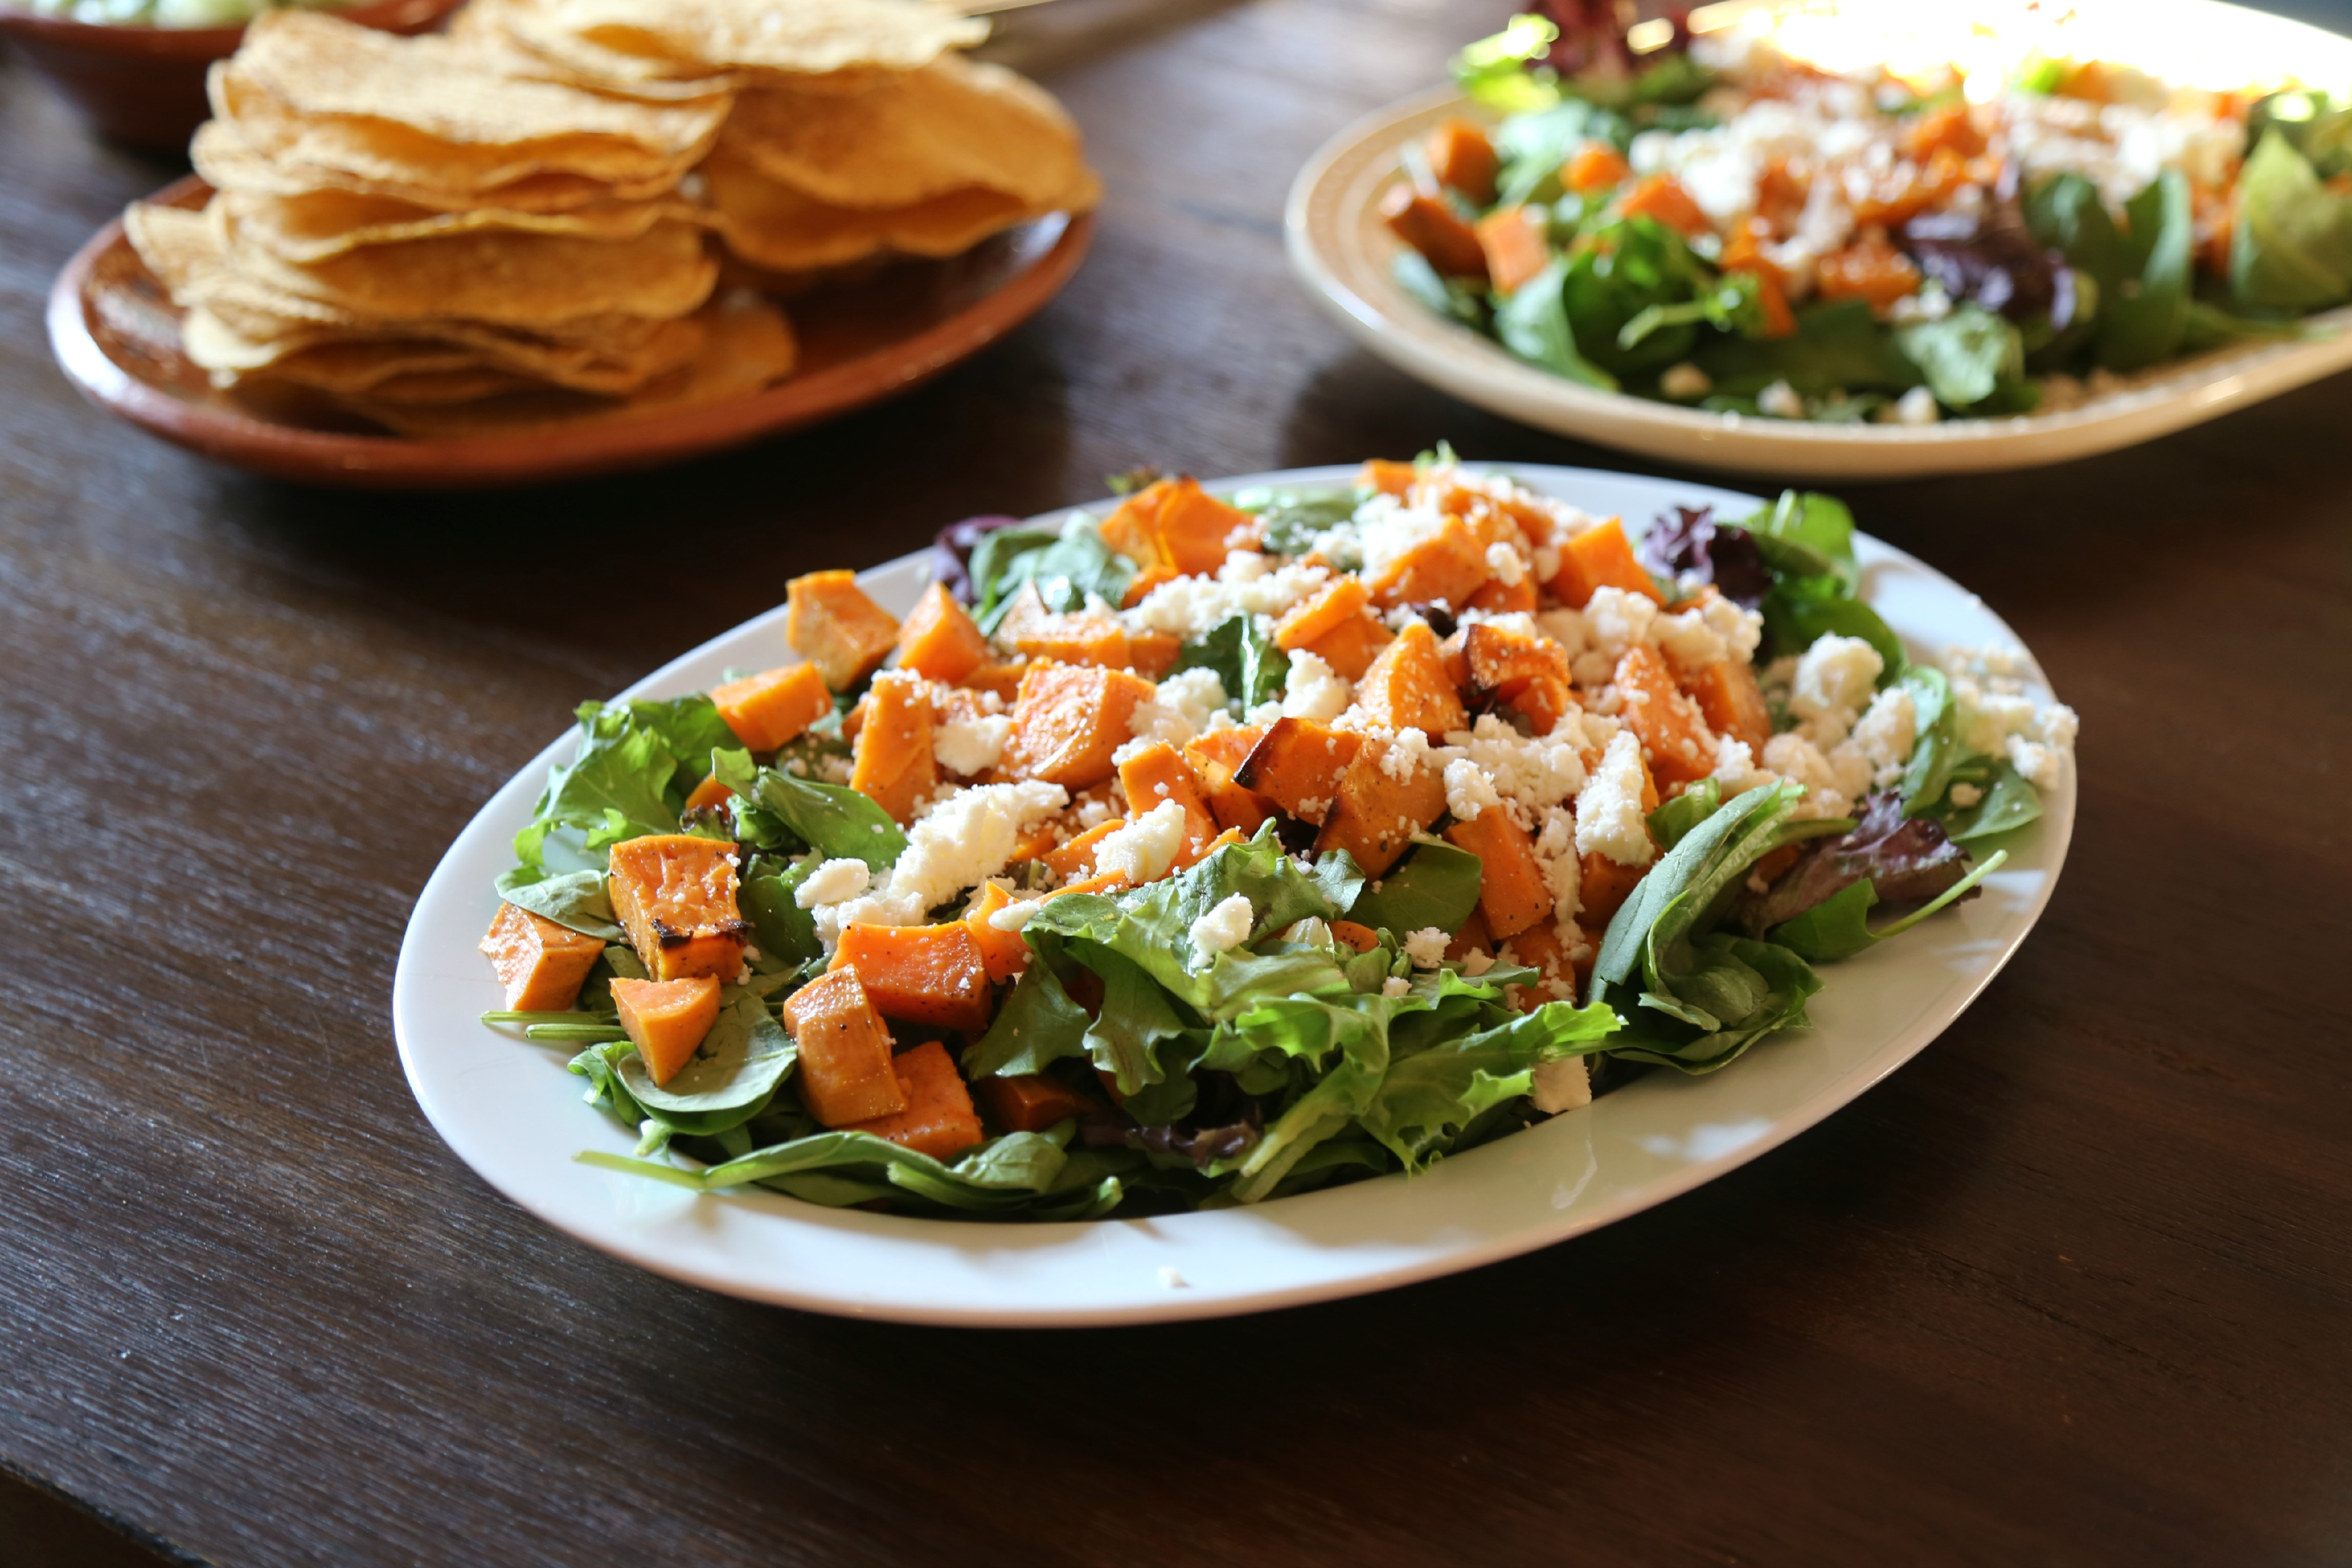 Roasted Sweet-Potato Salad with Hibiscus Lime Dressing - a fall inspired salad made with roasted sweet potatoes served over a bed of mixed greens, topped with queso fresco, pepitas and dressed with hibiscus-lime vinaigrette.